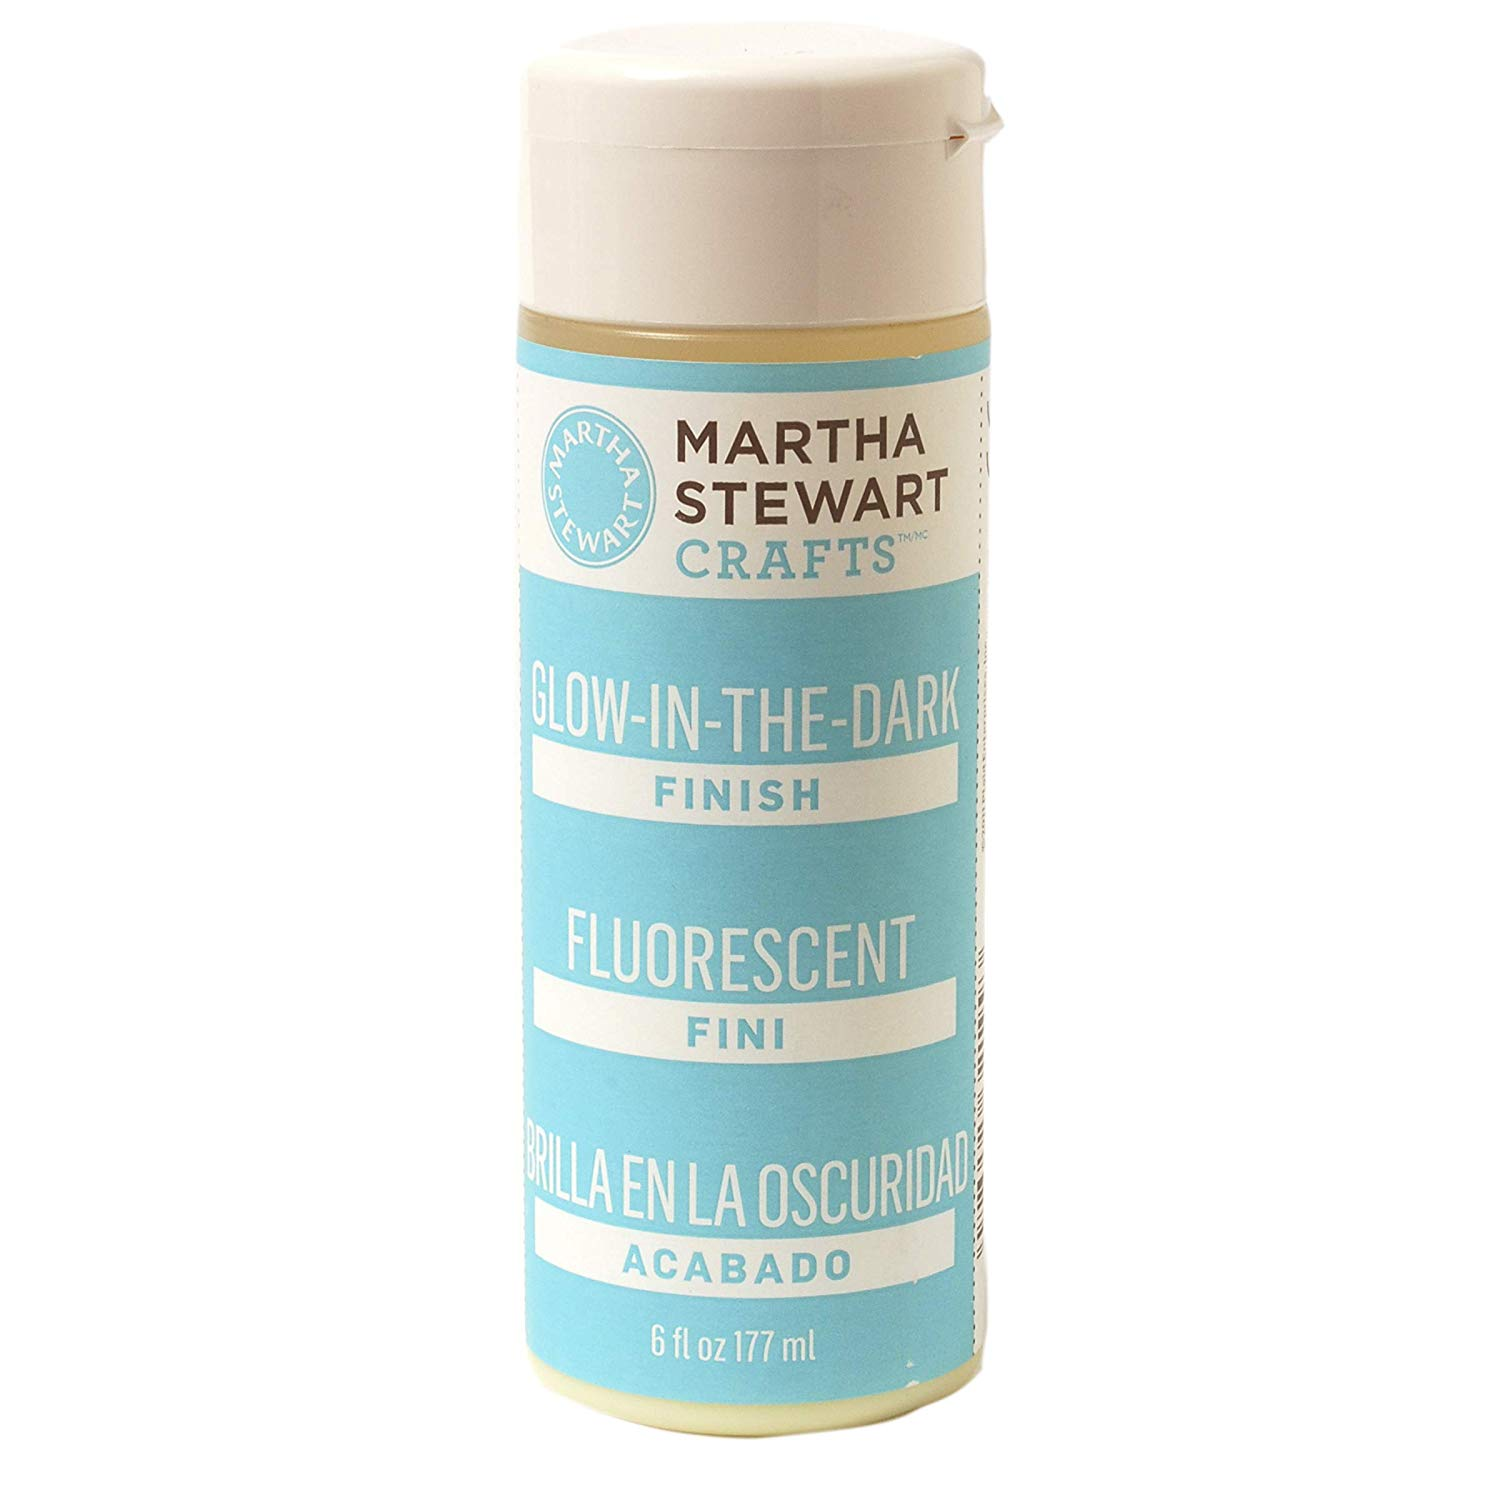 Martha Stewart Crafts Martha Stewart Glow-in-The-Dark Finish, 6 Ounces Paint, 6 oz,